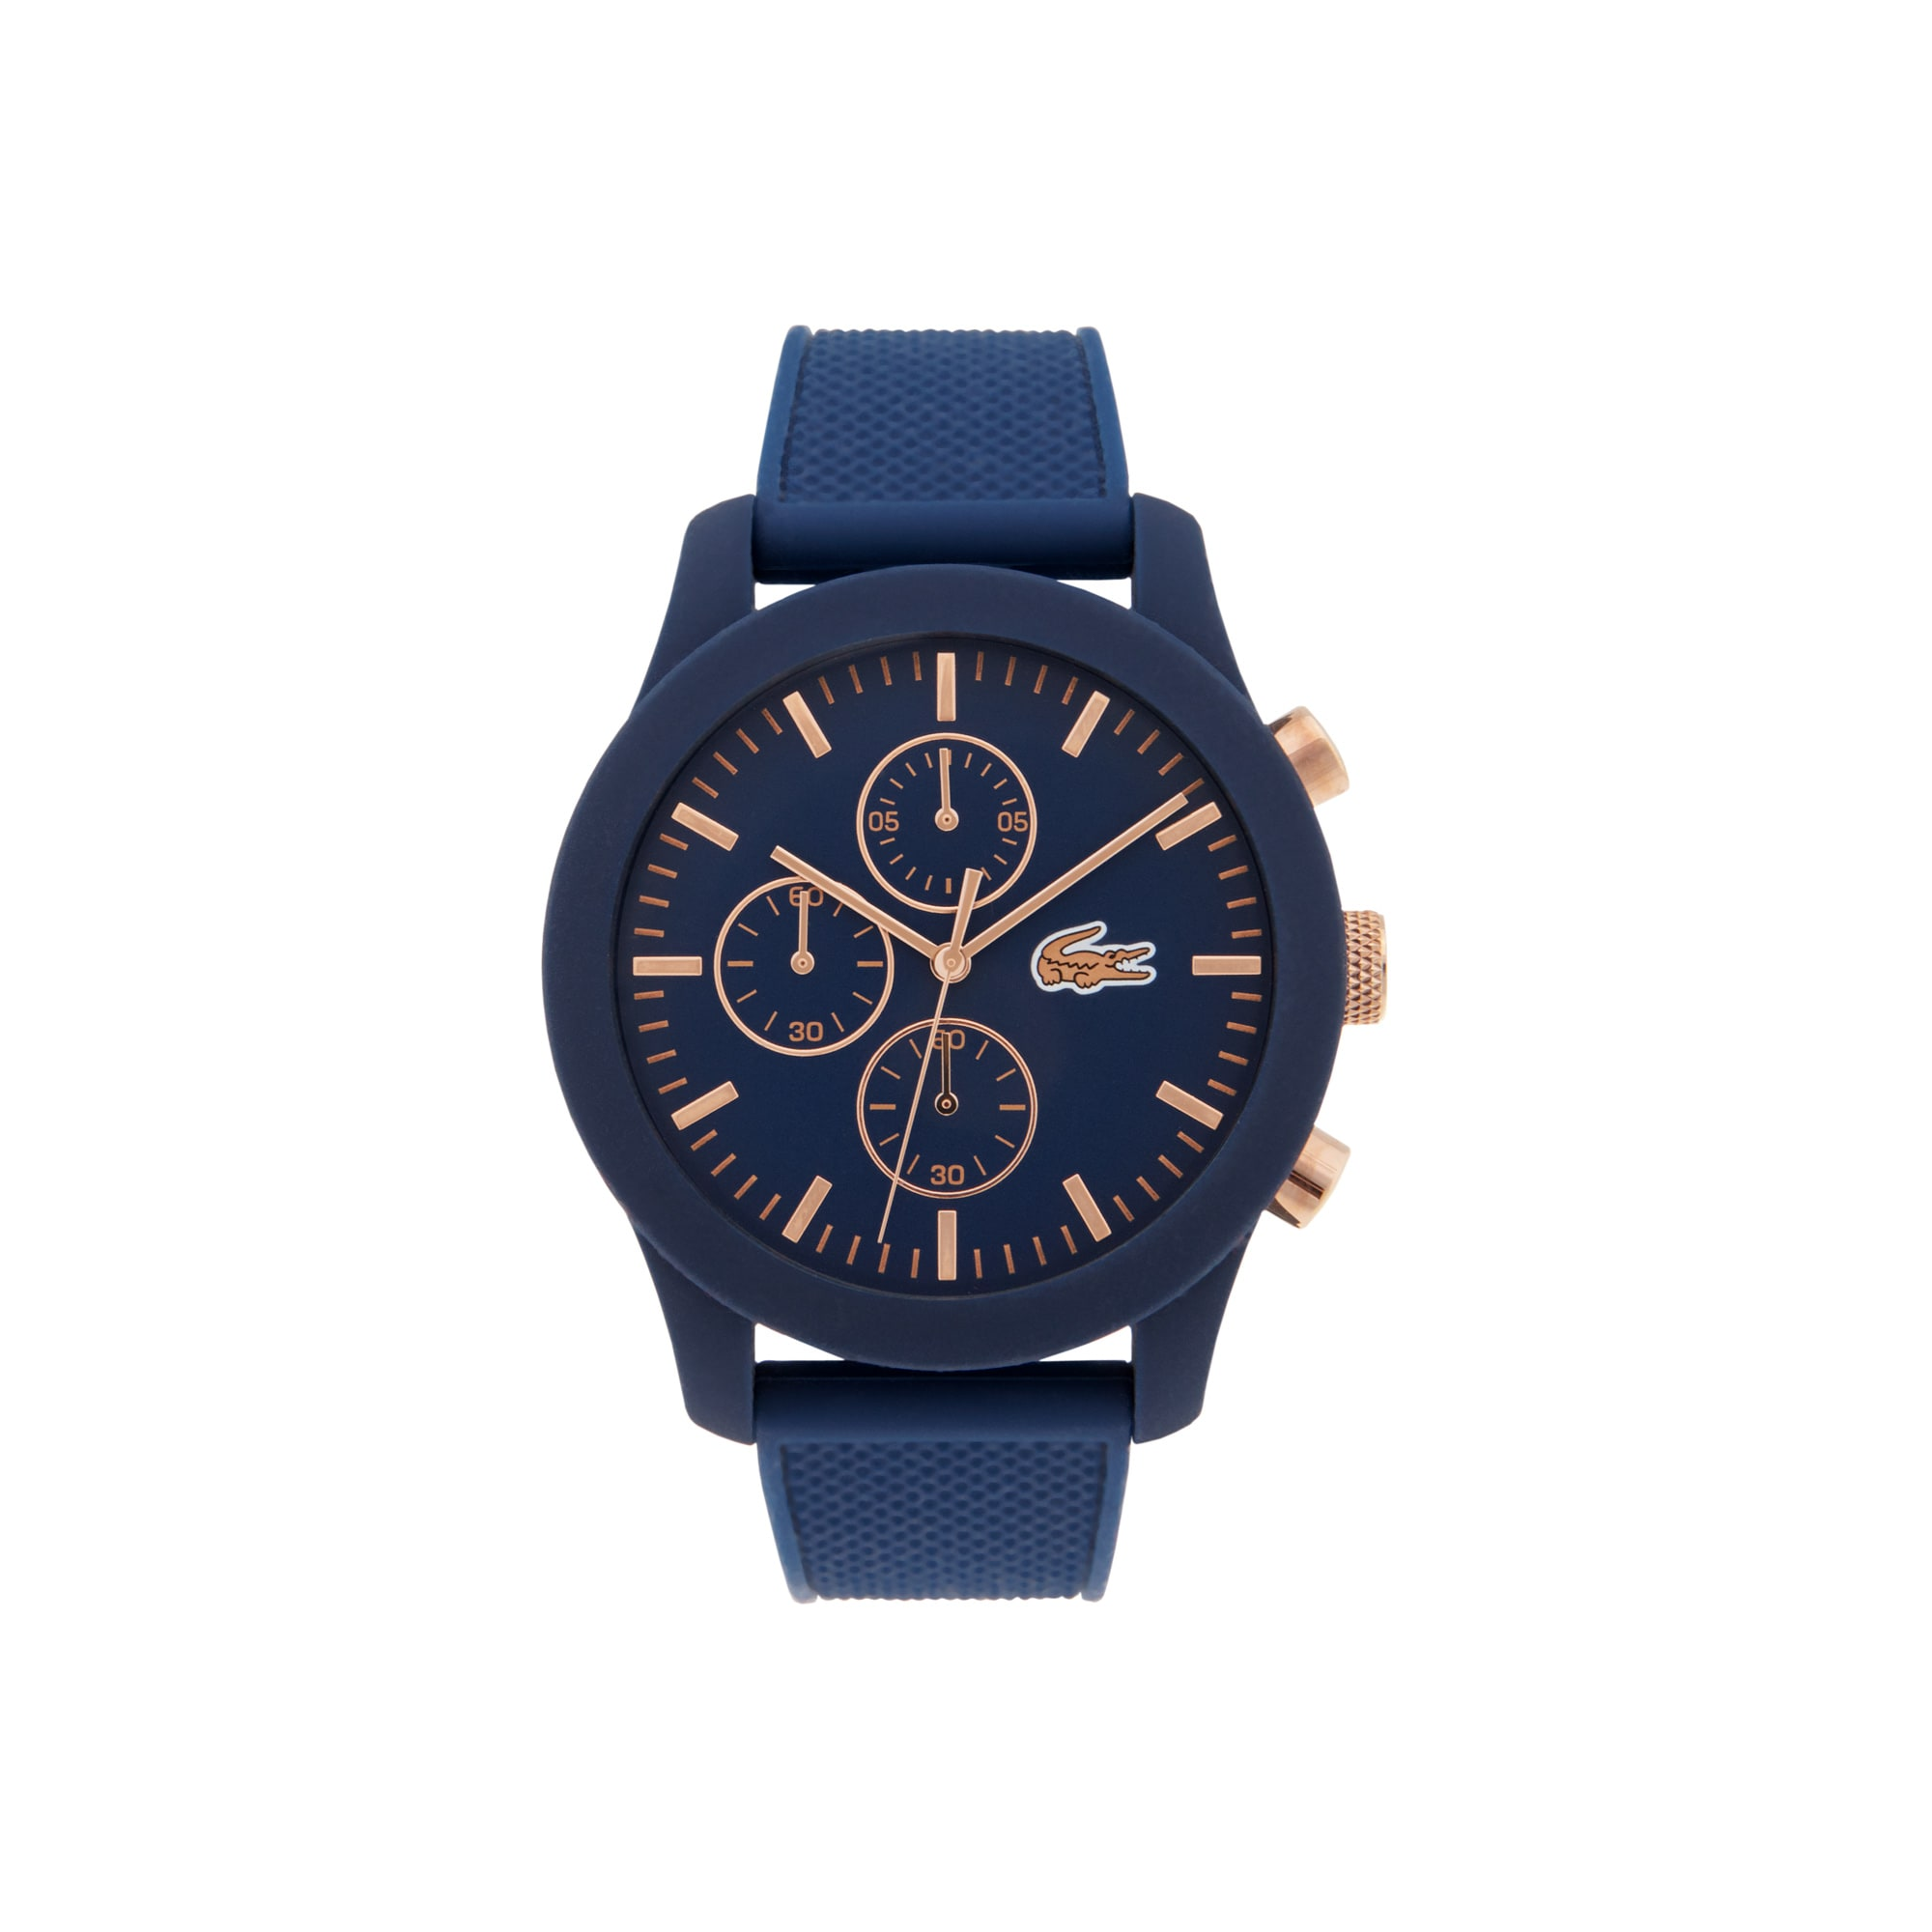 Men's Lacoste 12.12 Watch with Blue Silicone Strap ...